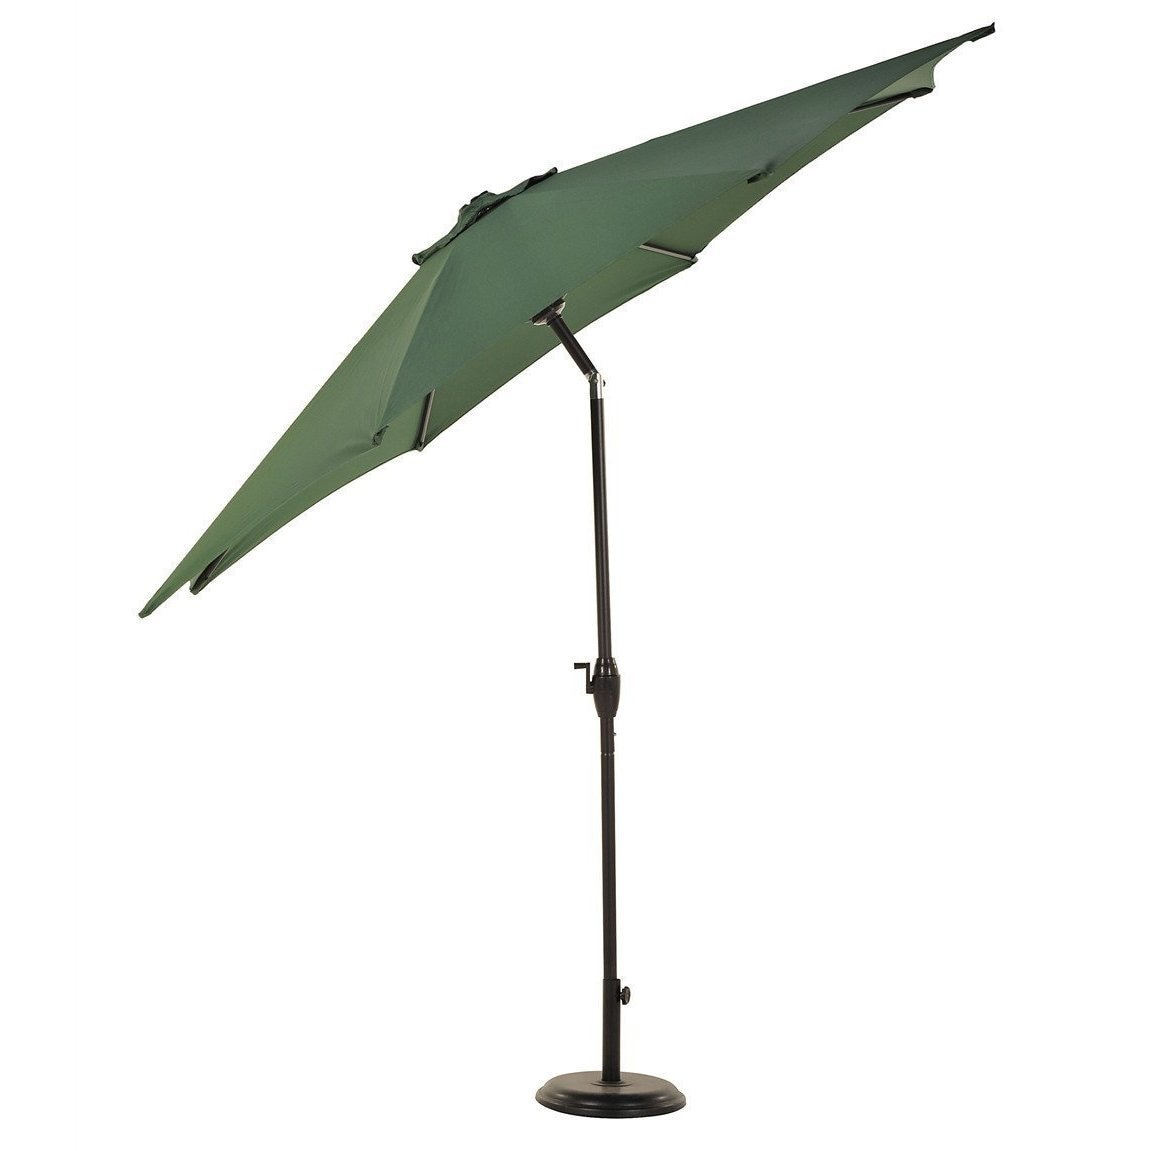 Grand Patio 9 Foot Outdoor Aluminum Market Umbrella With Auto Tilt And Crank 8 Ribs Free Shipping Today 13059273